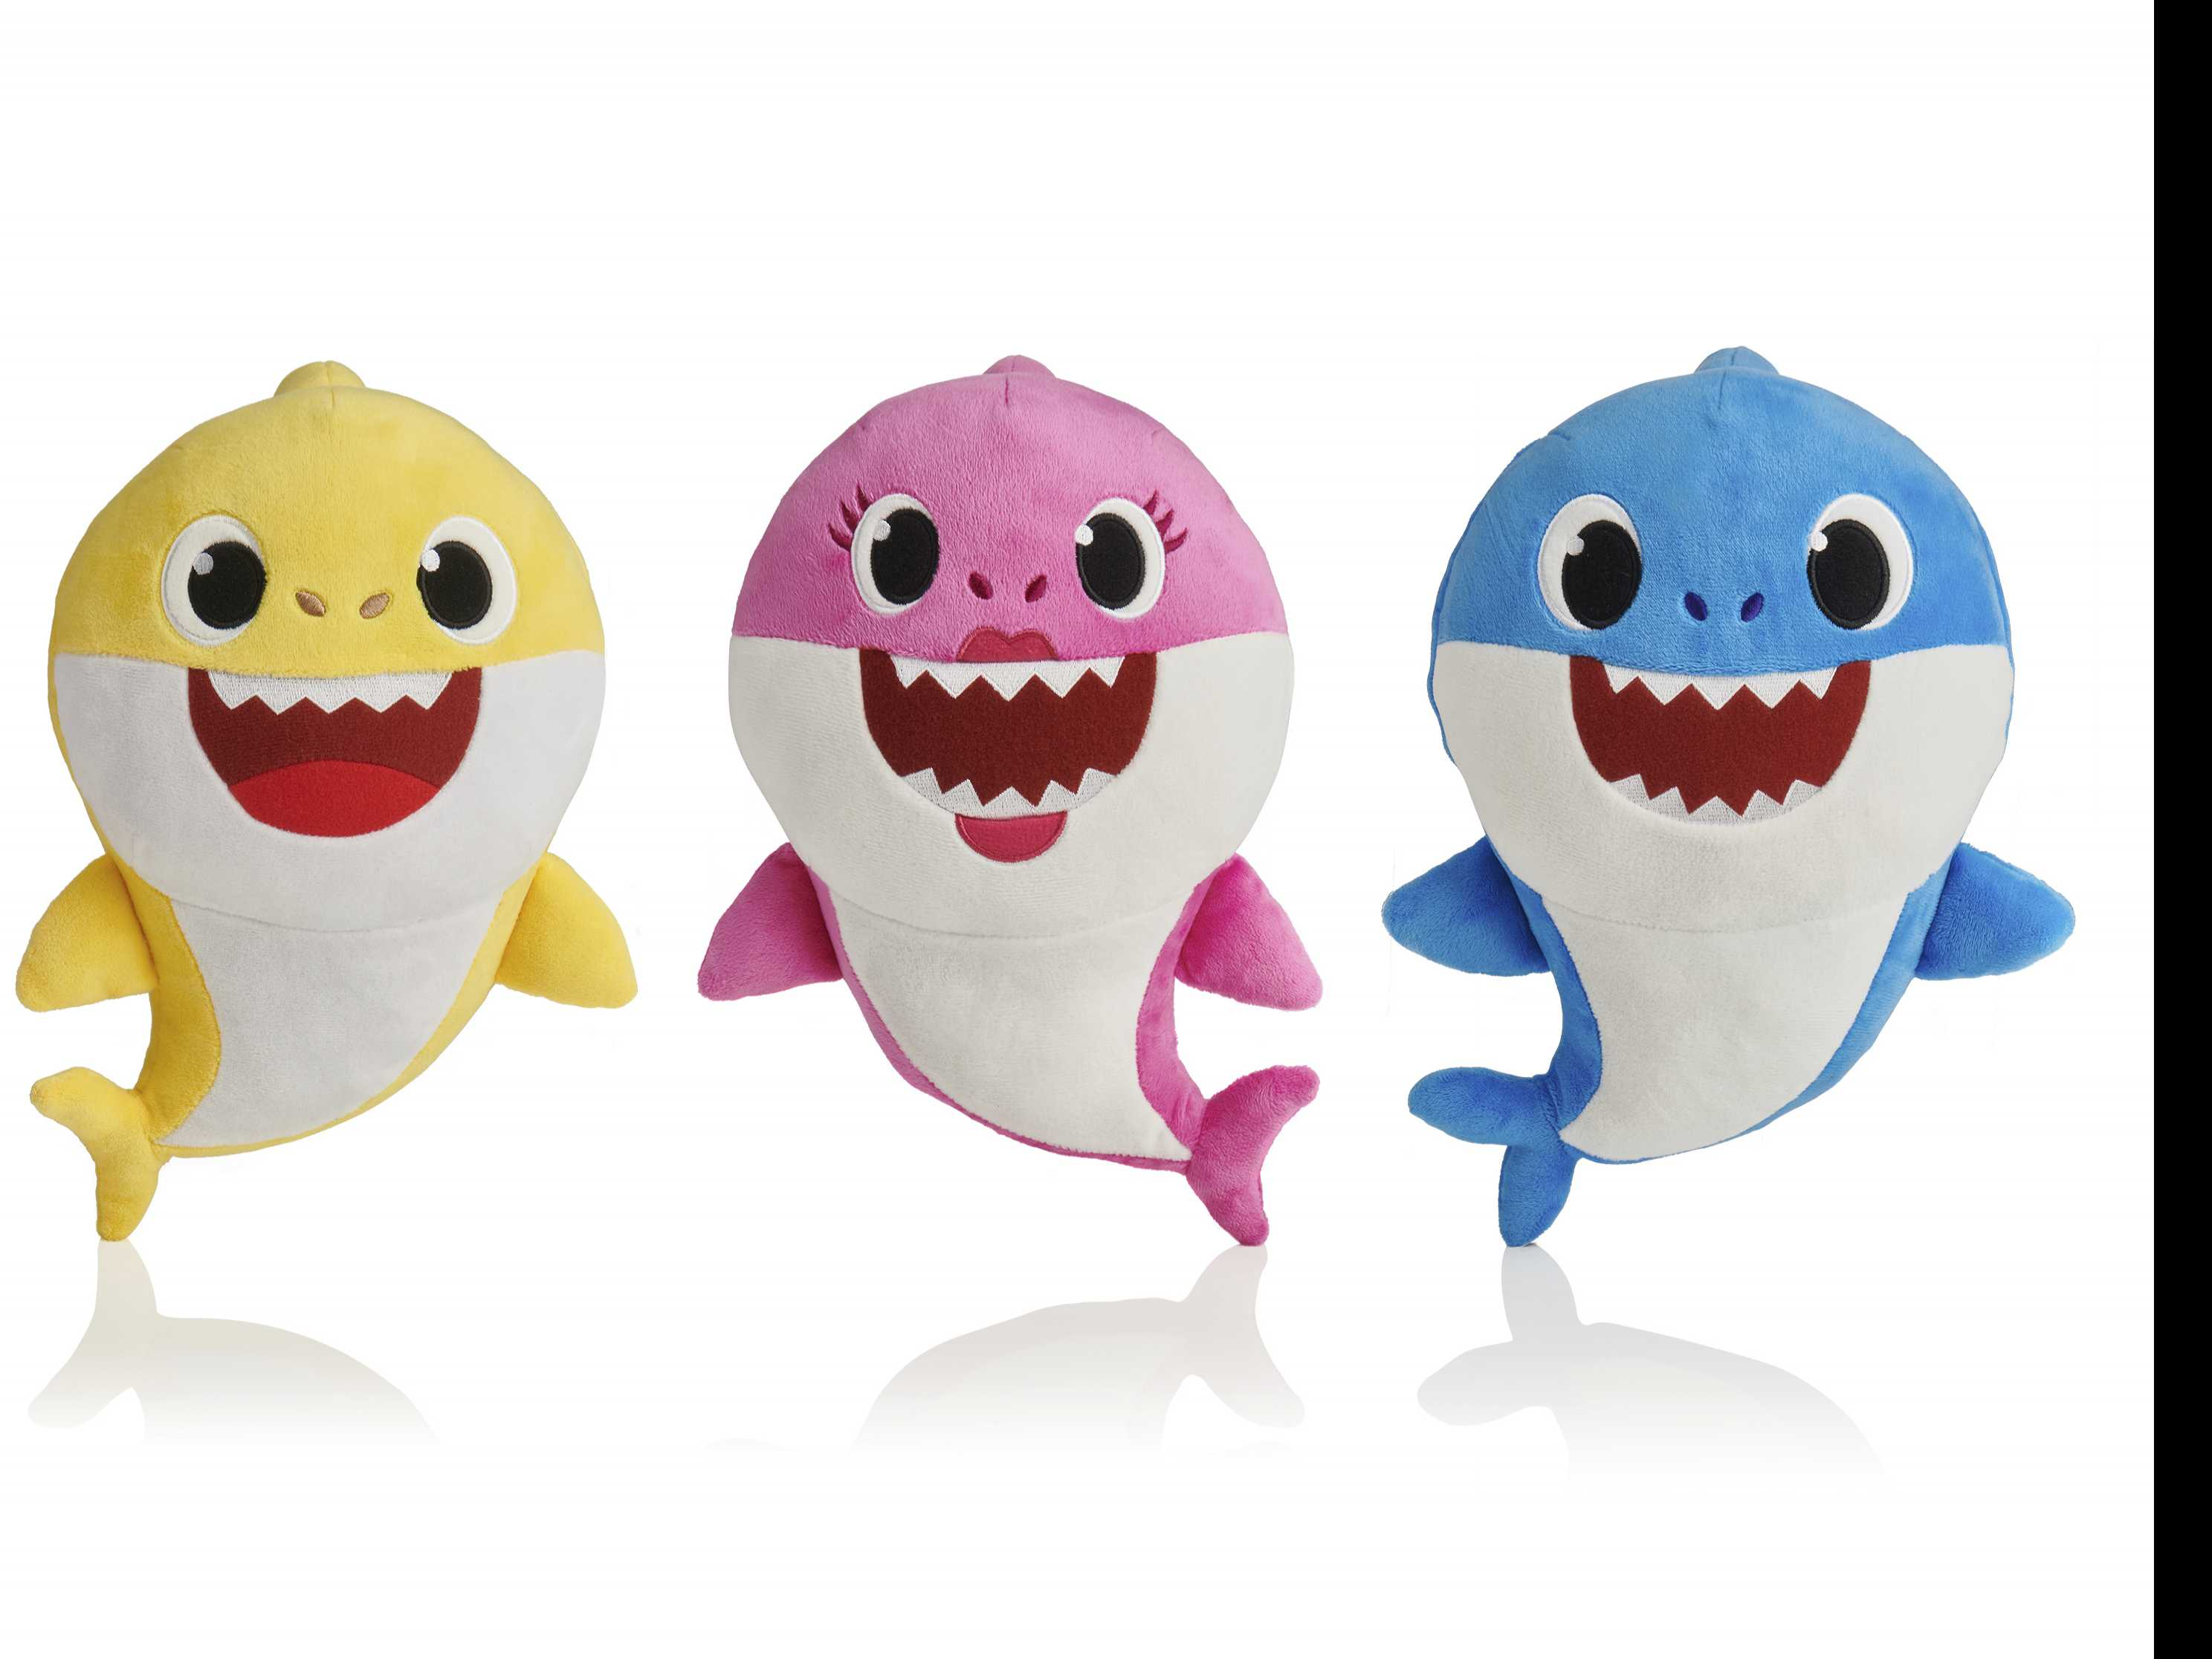 Doo Doo Doo Doo Doo Doo: 'Baby Shark' Bites Into the Culture